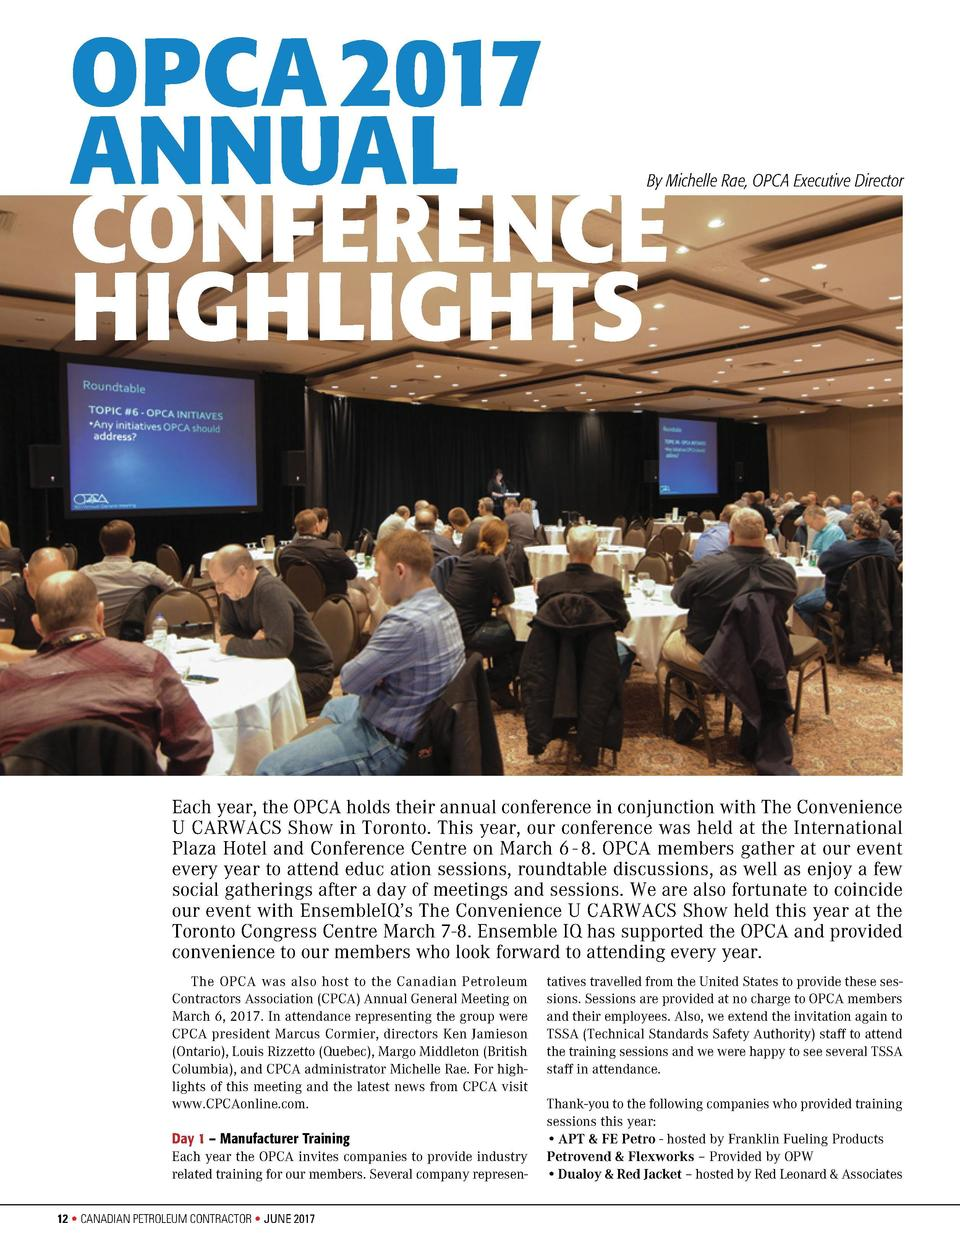 OPCA   2017 ANNUAL CONFERENCE HIGHLIGHTS  By Michelle Rae, OPCA Executive Director  Each year, the OPCA holds their annual...